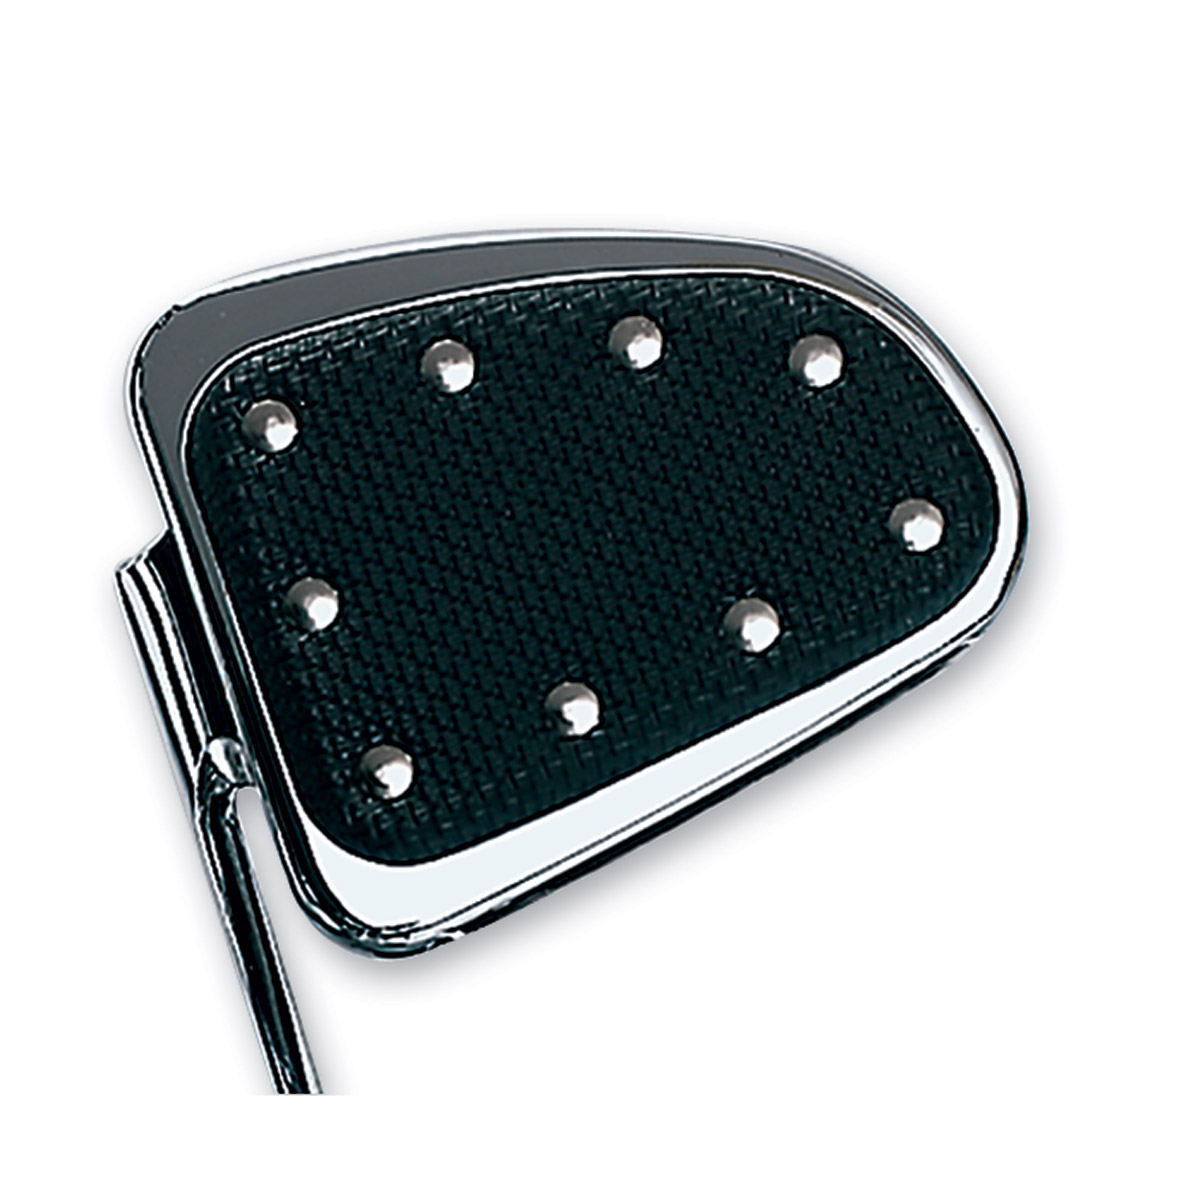 Cycle Smiths Banana Board Brake Pedal Cover with Rivets